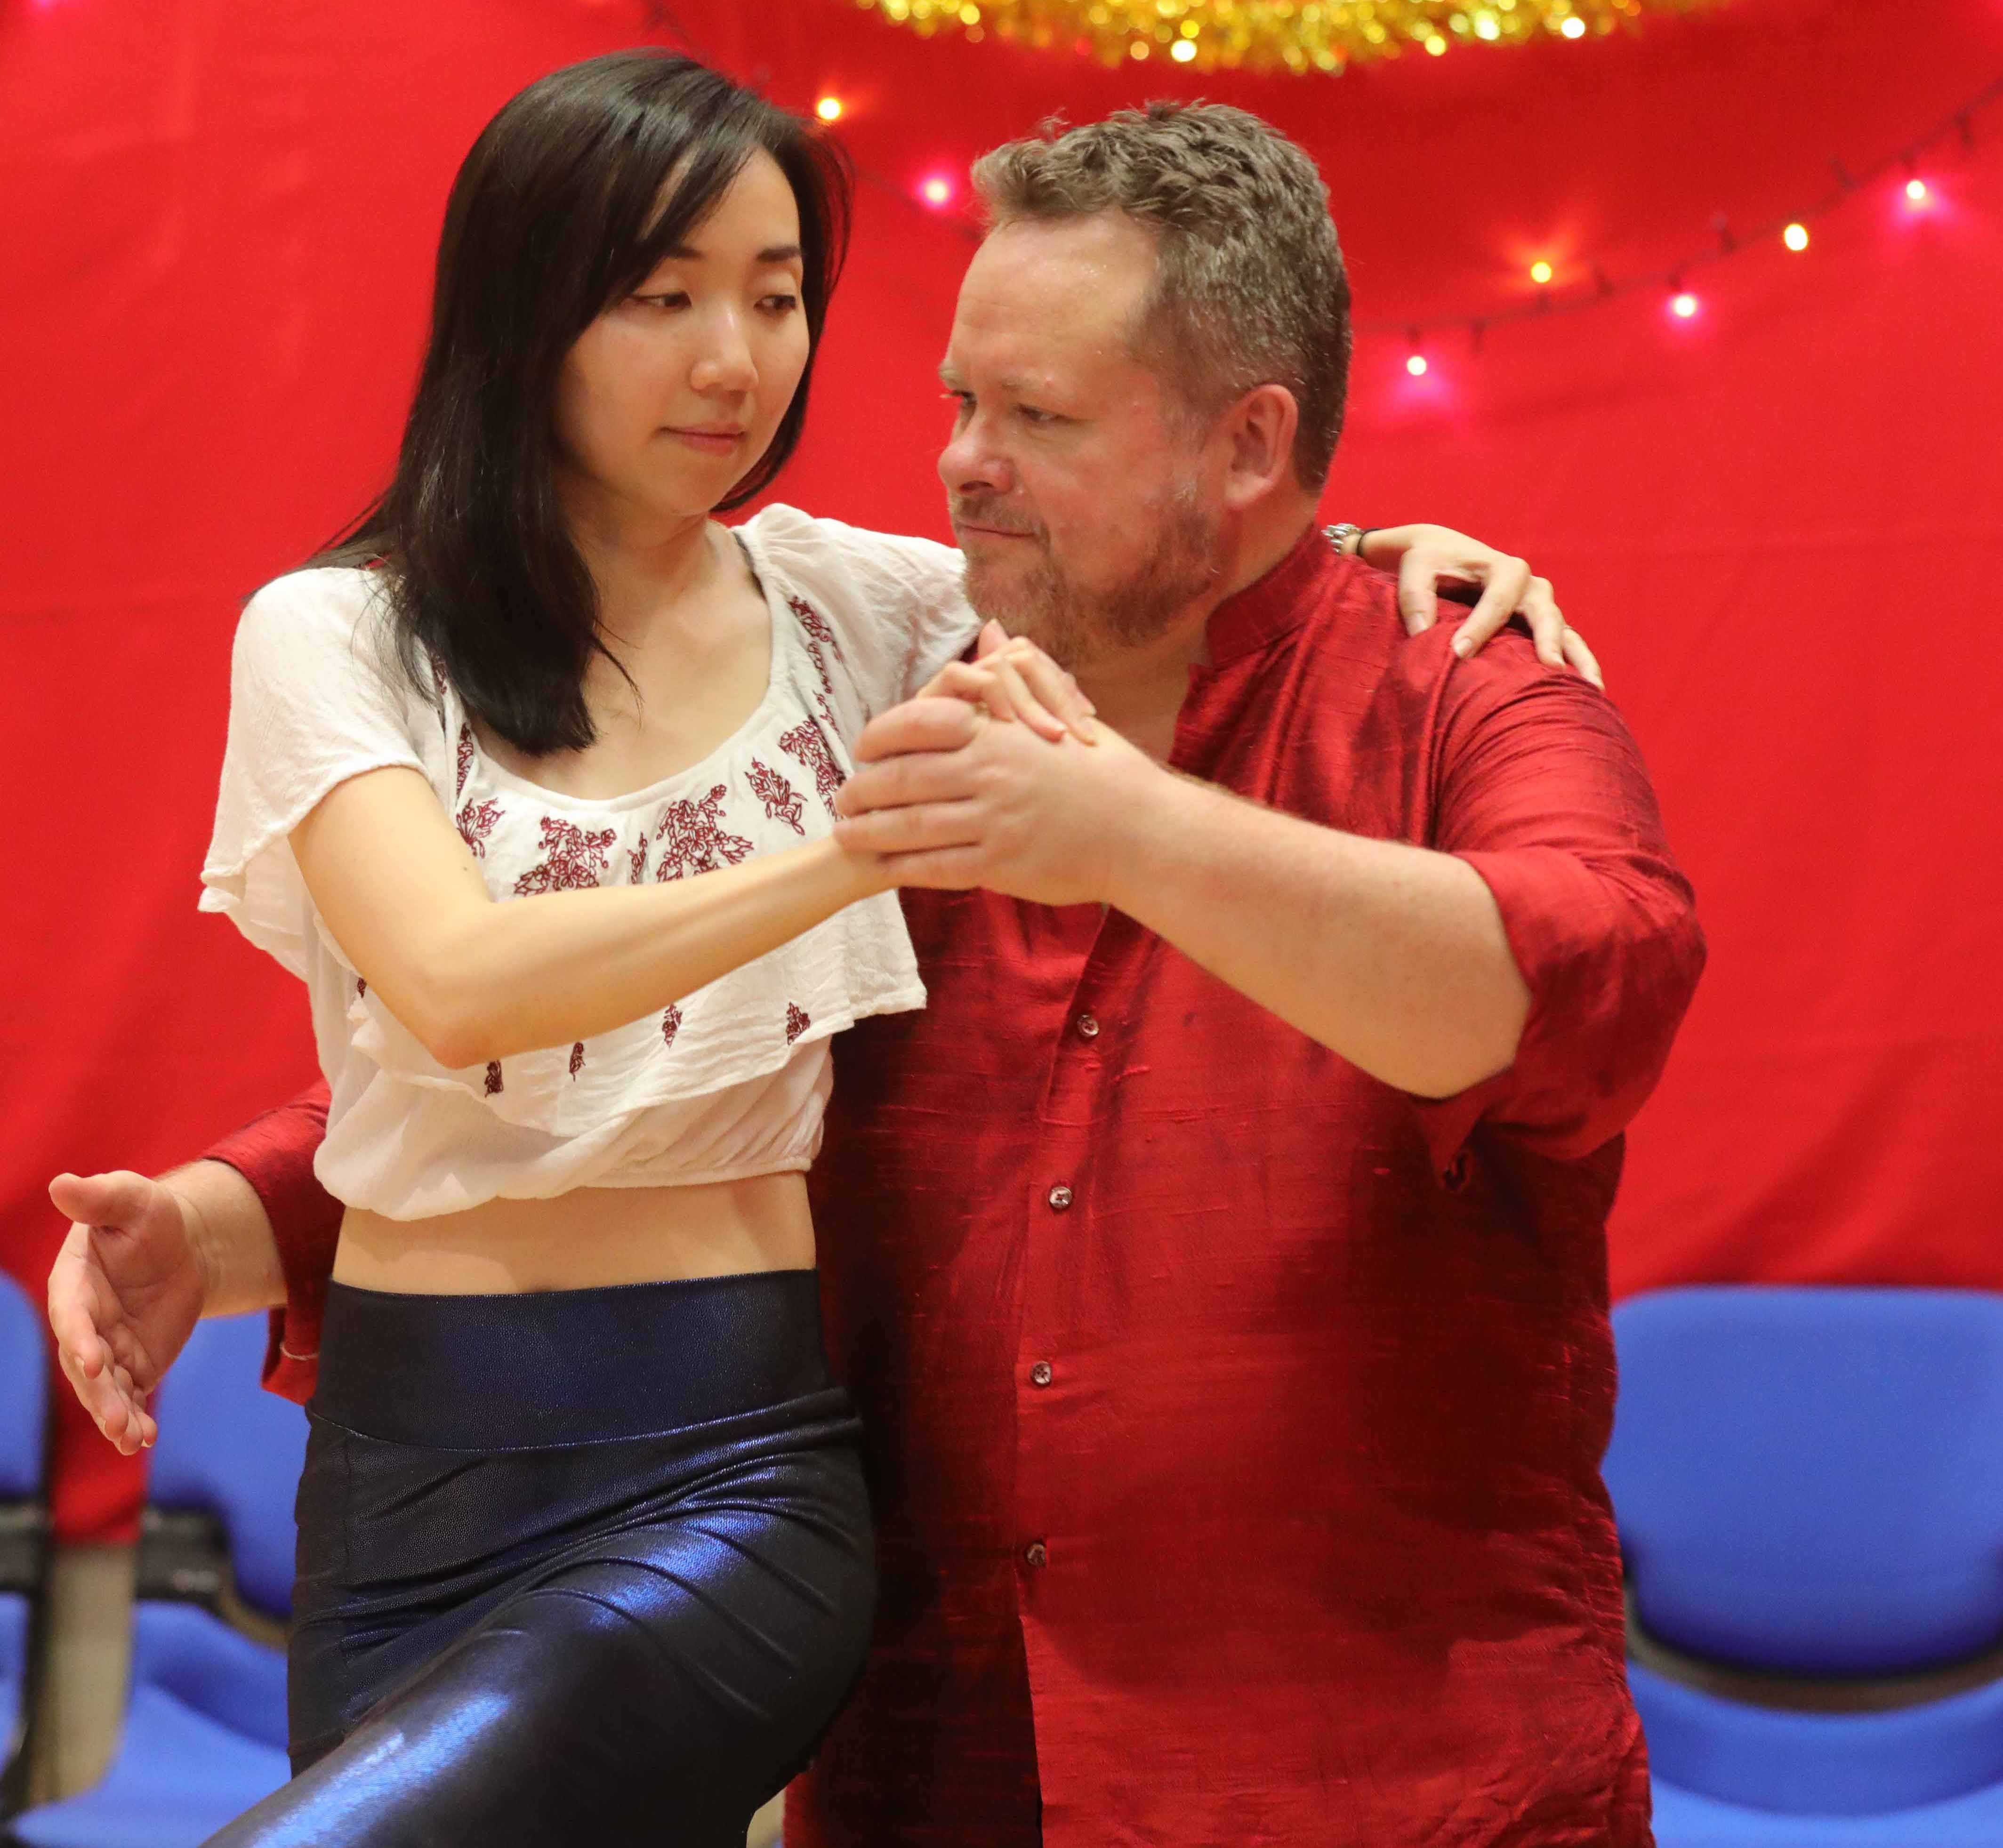 north sydney glebe tango lessons best classes studios teachers